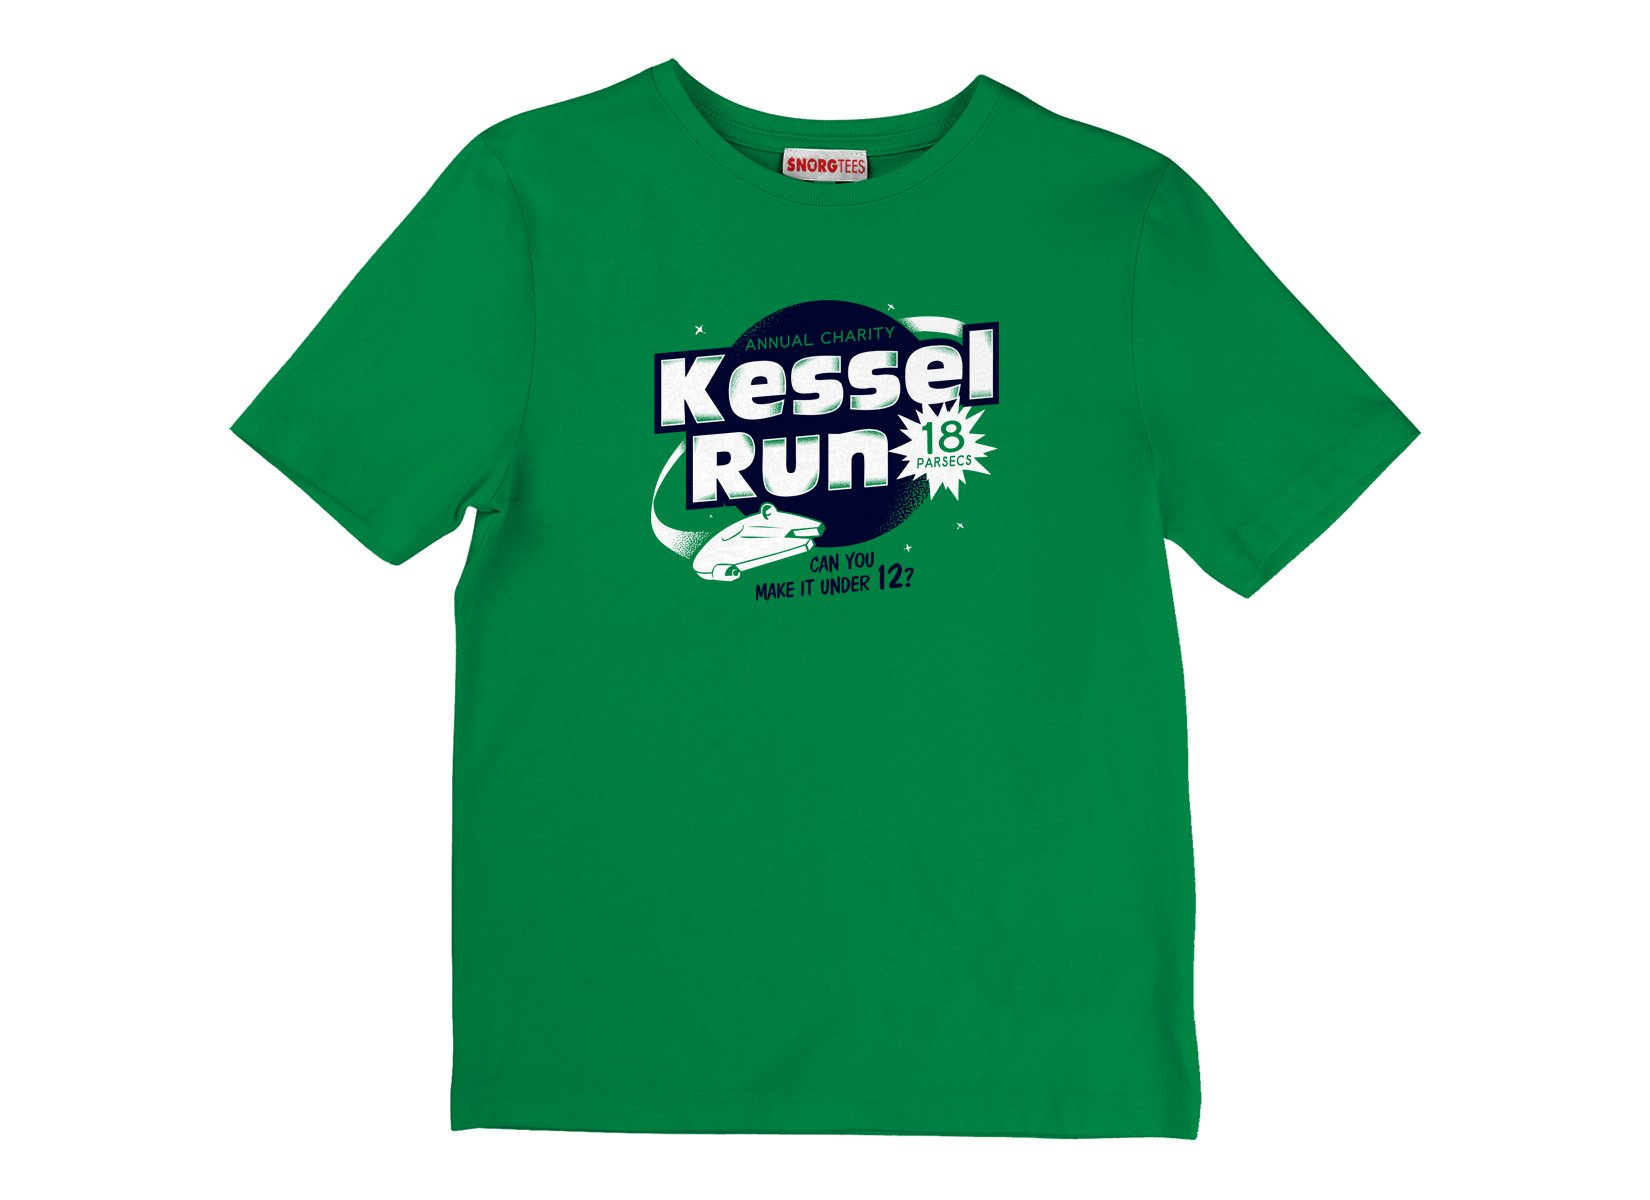 Kessel Run on Kids T-Shirt